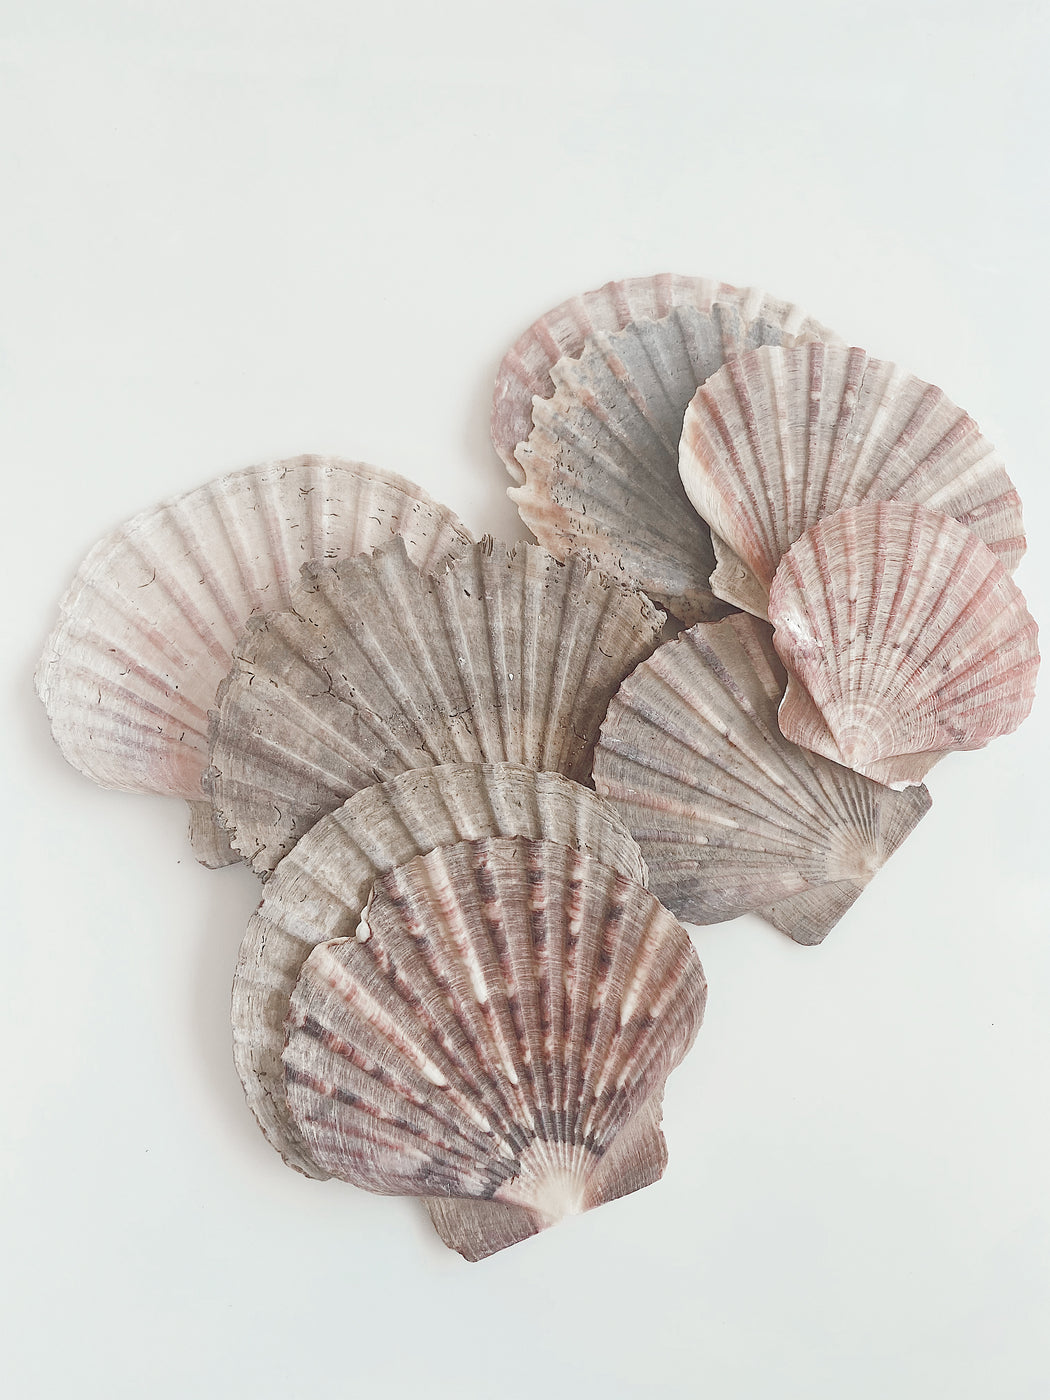 Shells From New Zealand